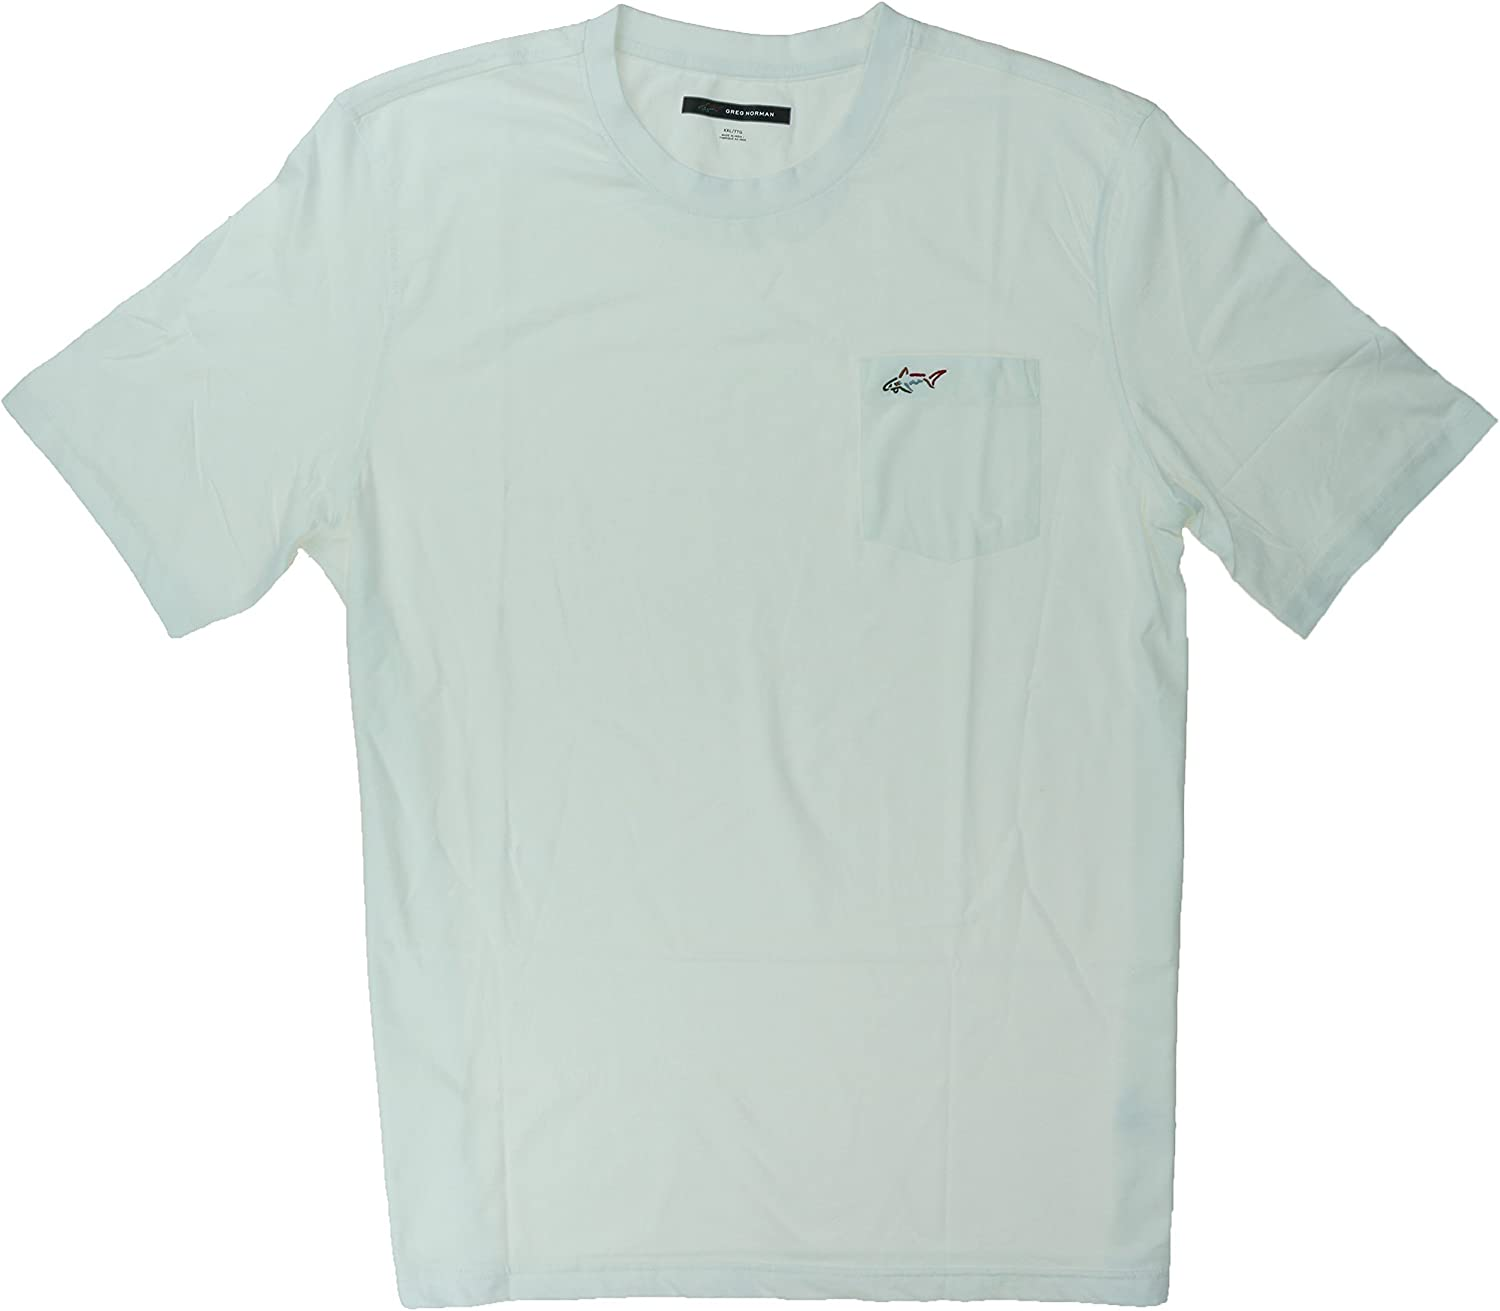 Greg Norman Men's 100% Cotton T-Shirt with Chest Pocket